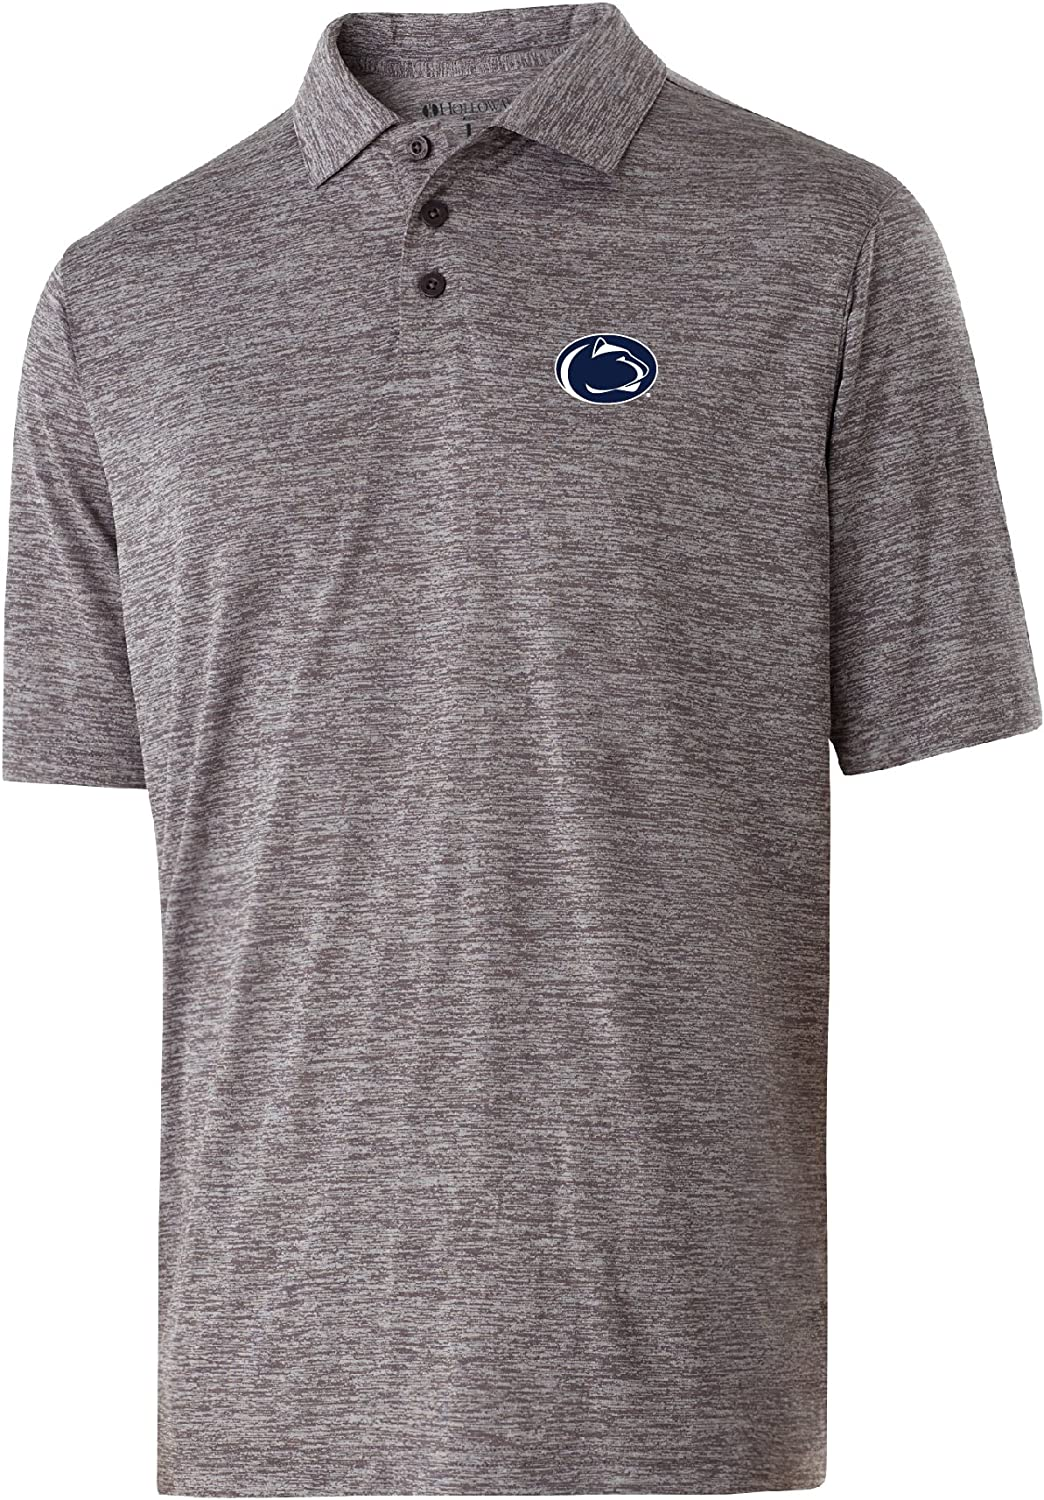 Small Ouray Sportswear NCAA Penn State Nittany Lions Electrify 2.0 Polo Shirts Graphite Heather